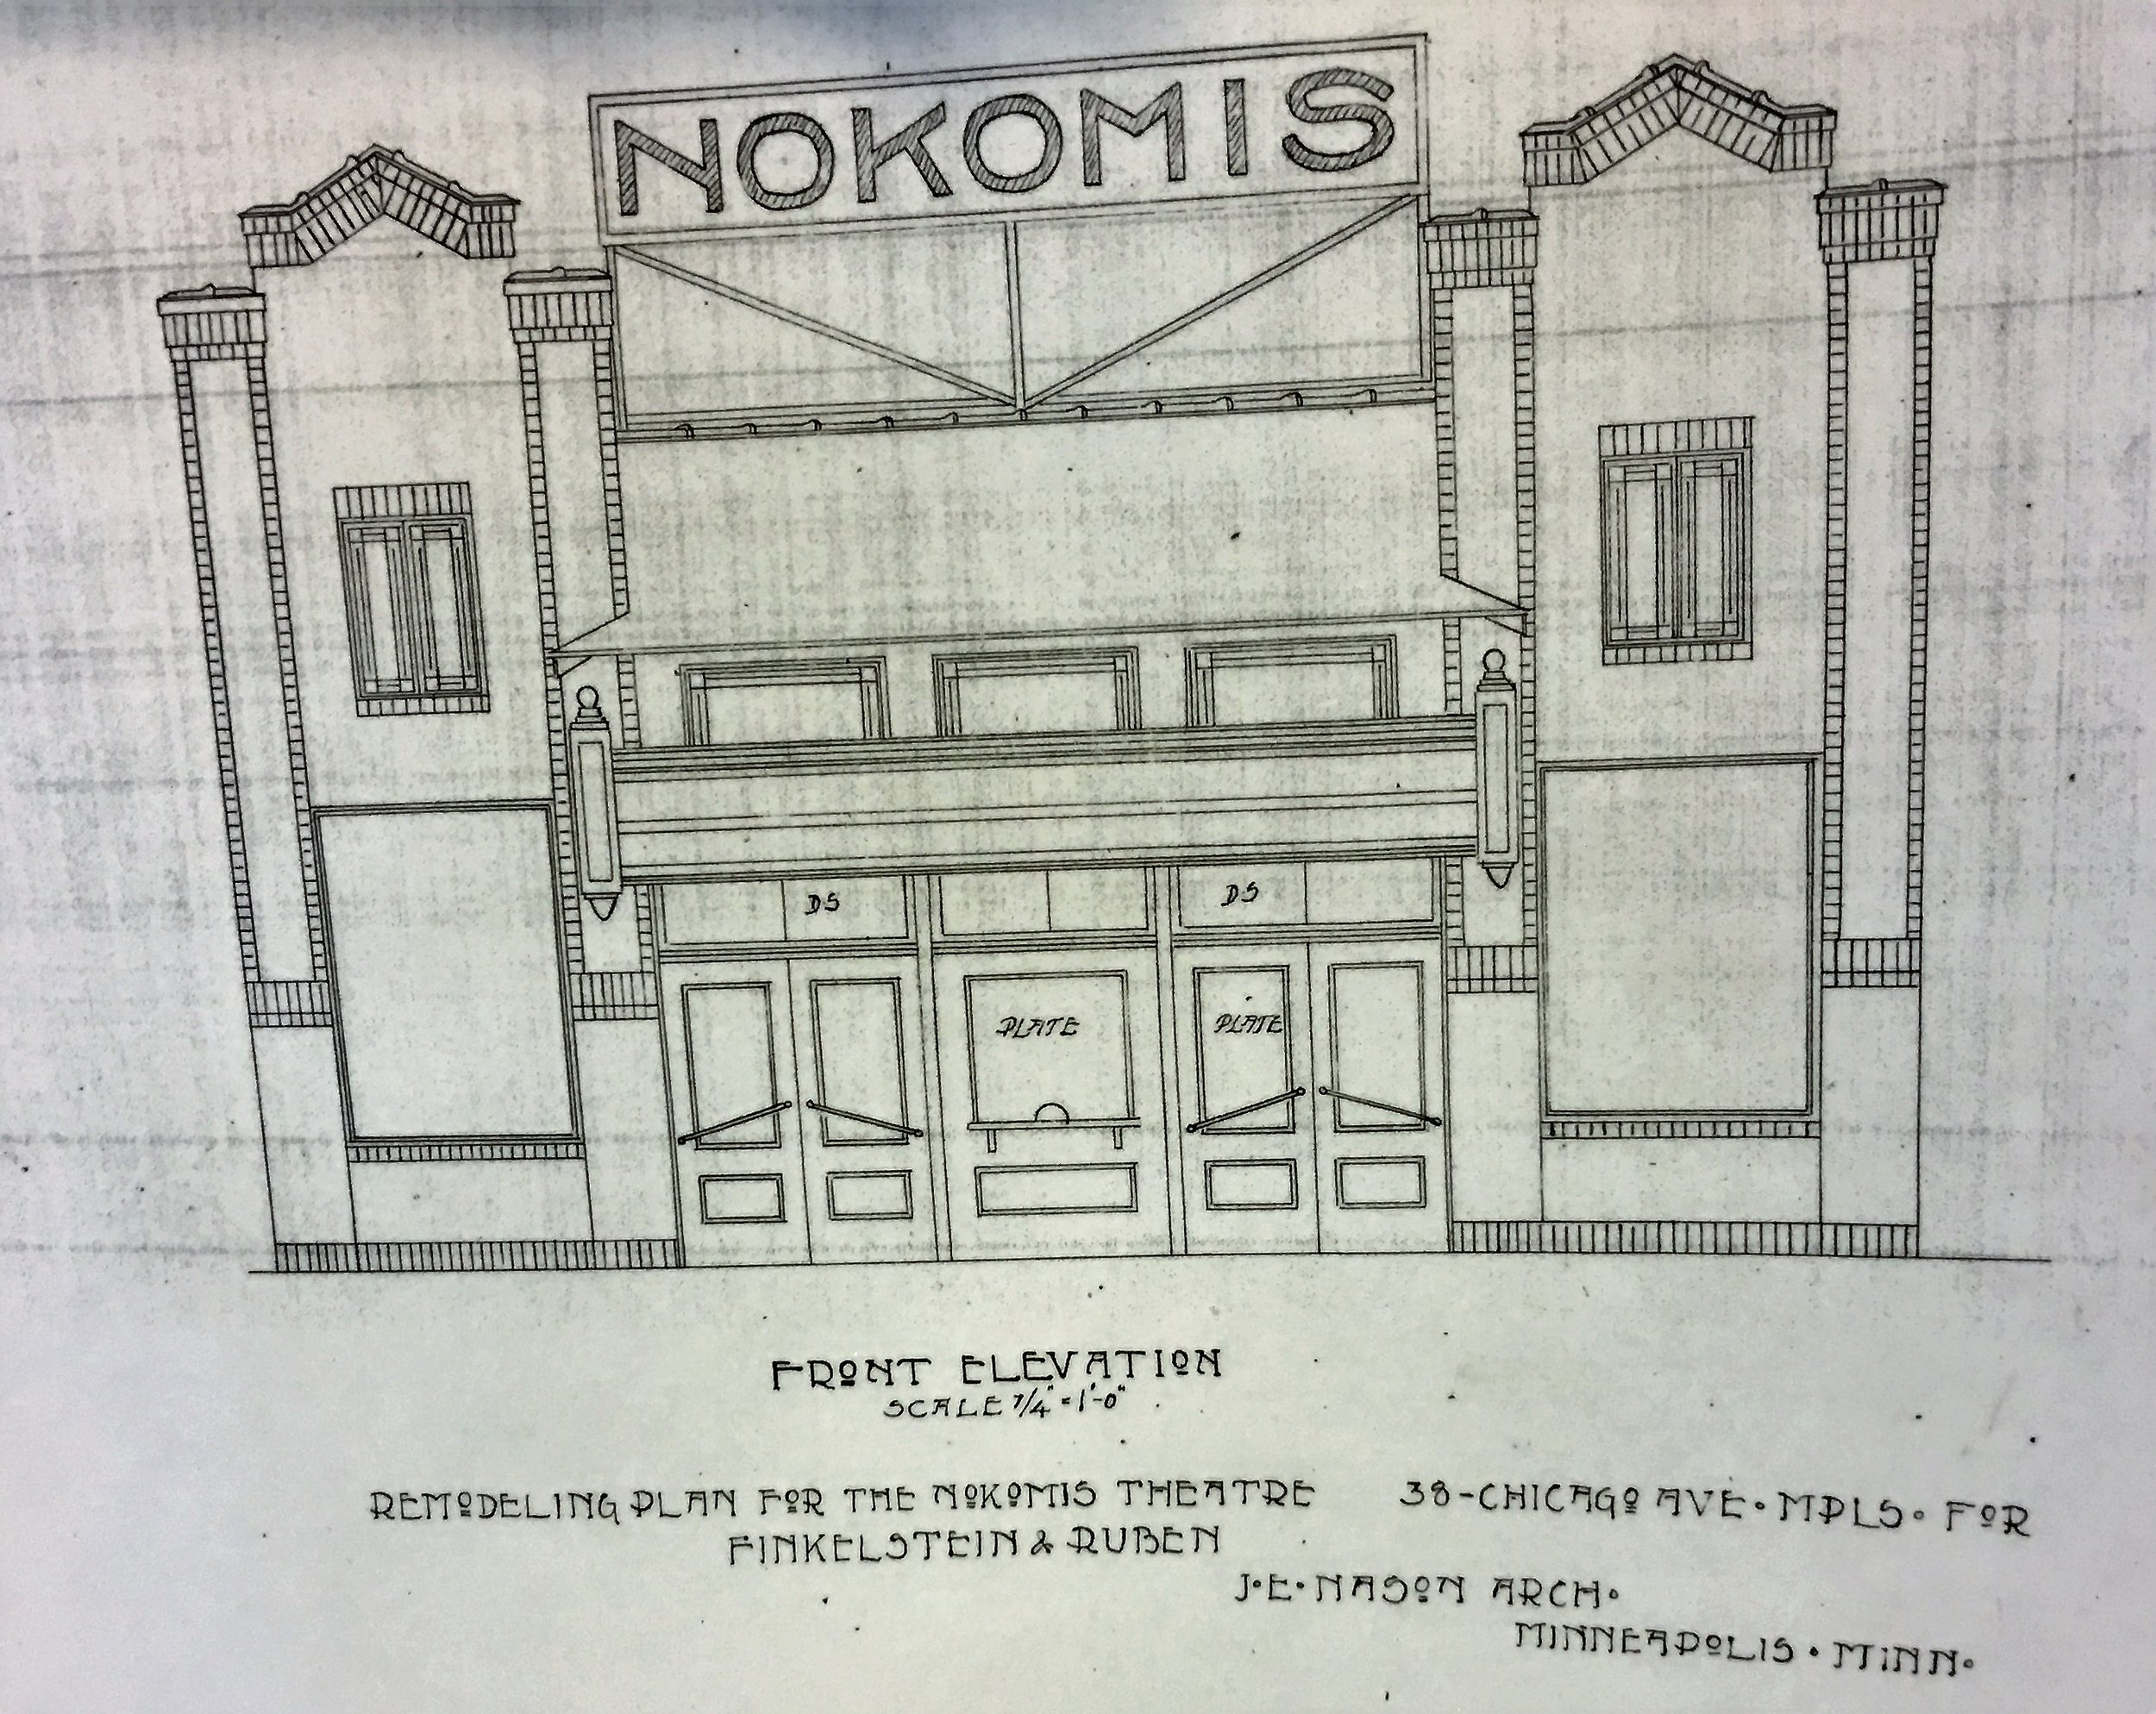 Original Front Elevation by Finkelstein and Ruben   Photo of the print copies held by the building owners